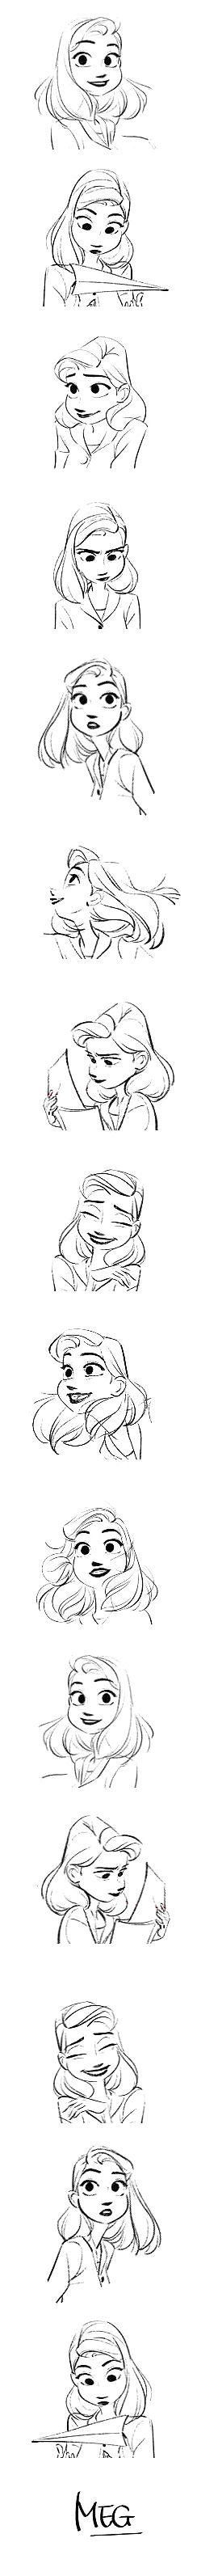 """Meg (Paperman)"" Expressions  